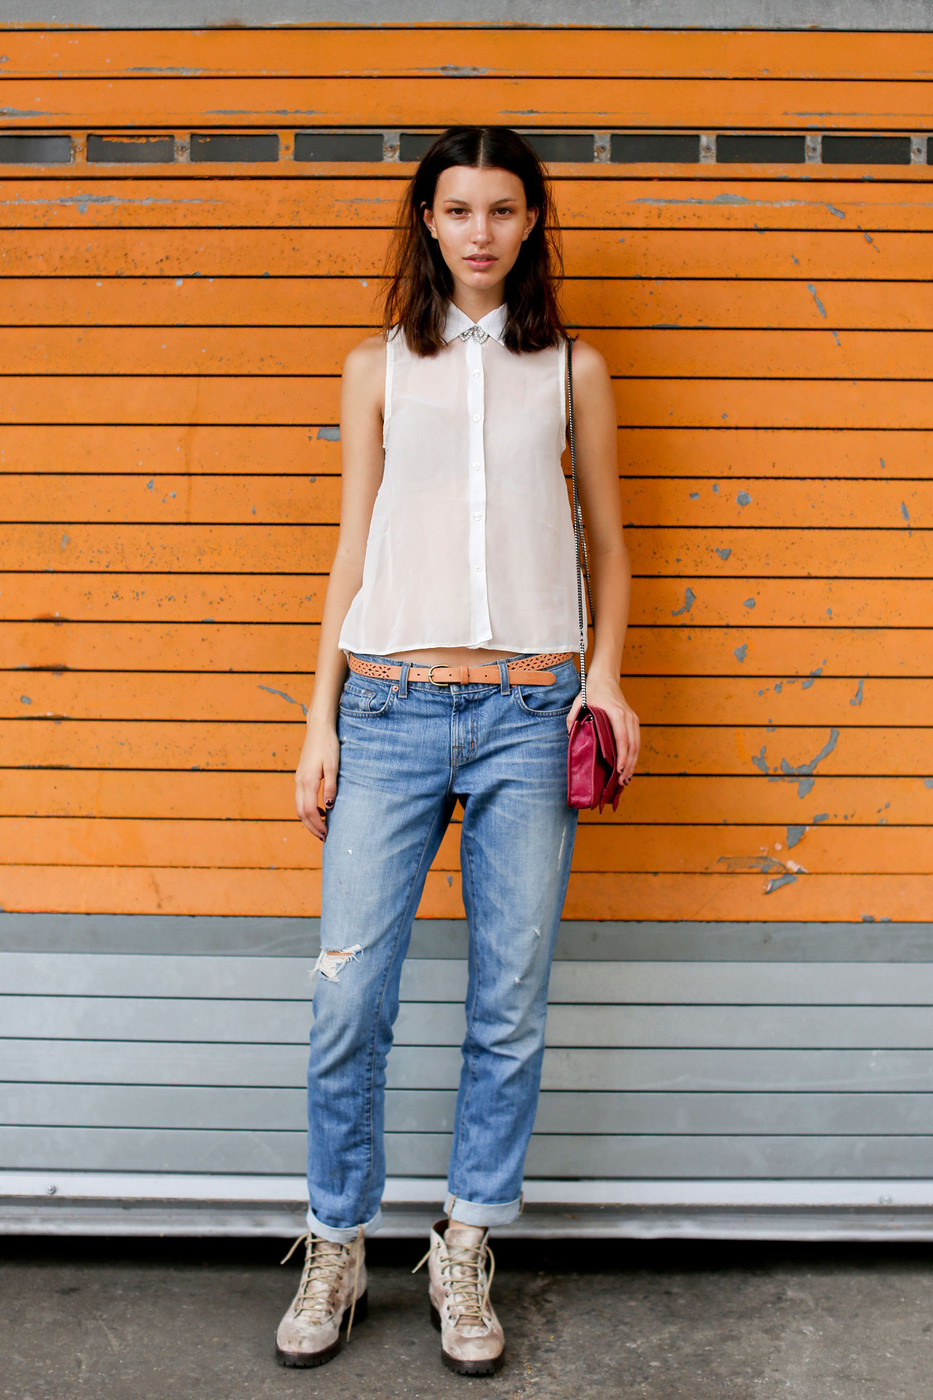 New York Fashion Week Spring 2013 Models Pictures Livingly